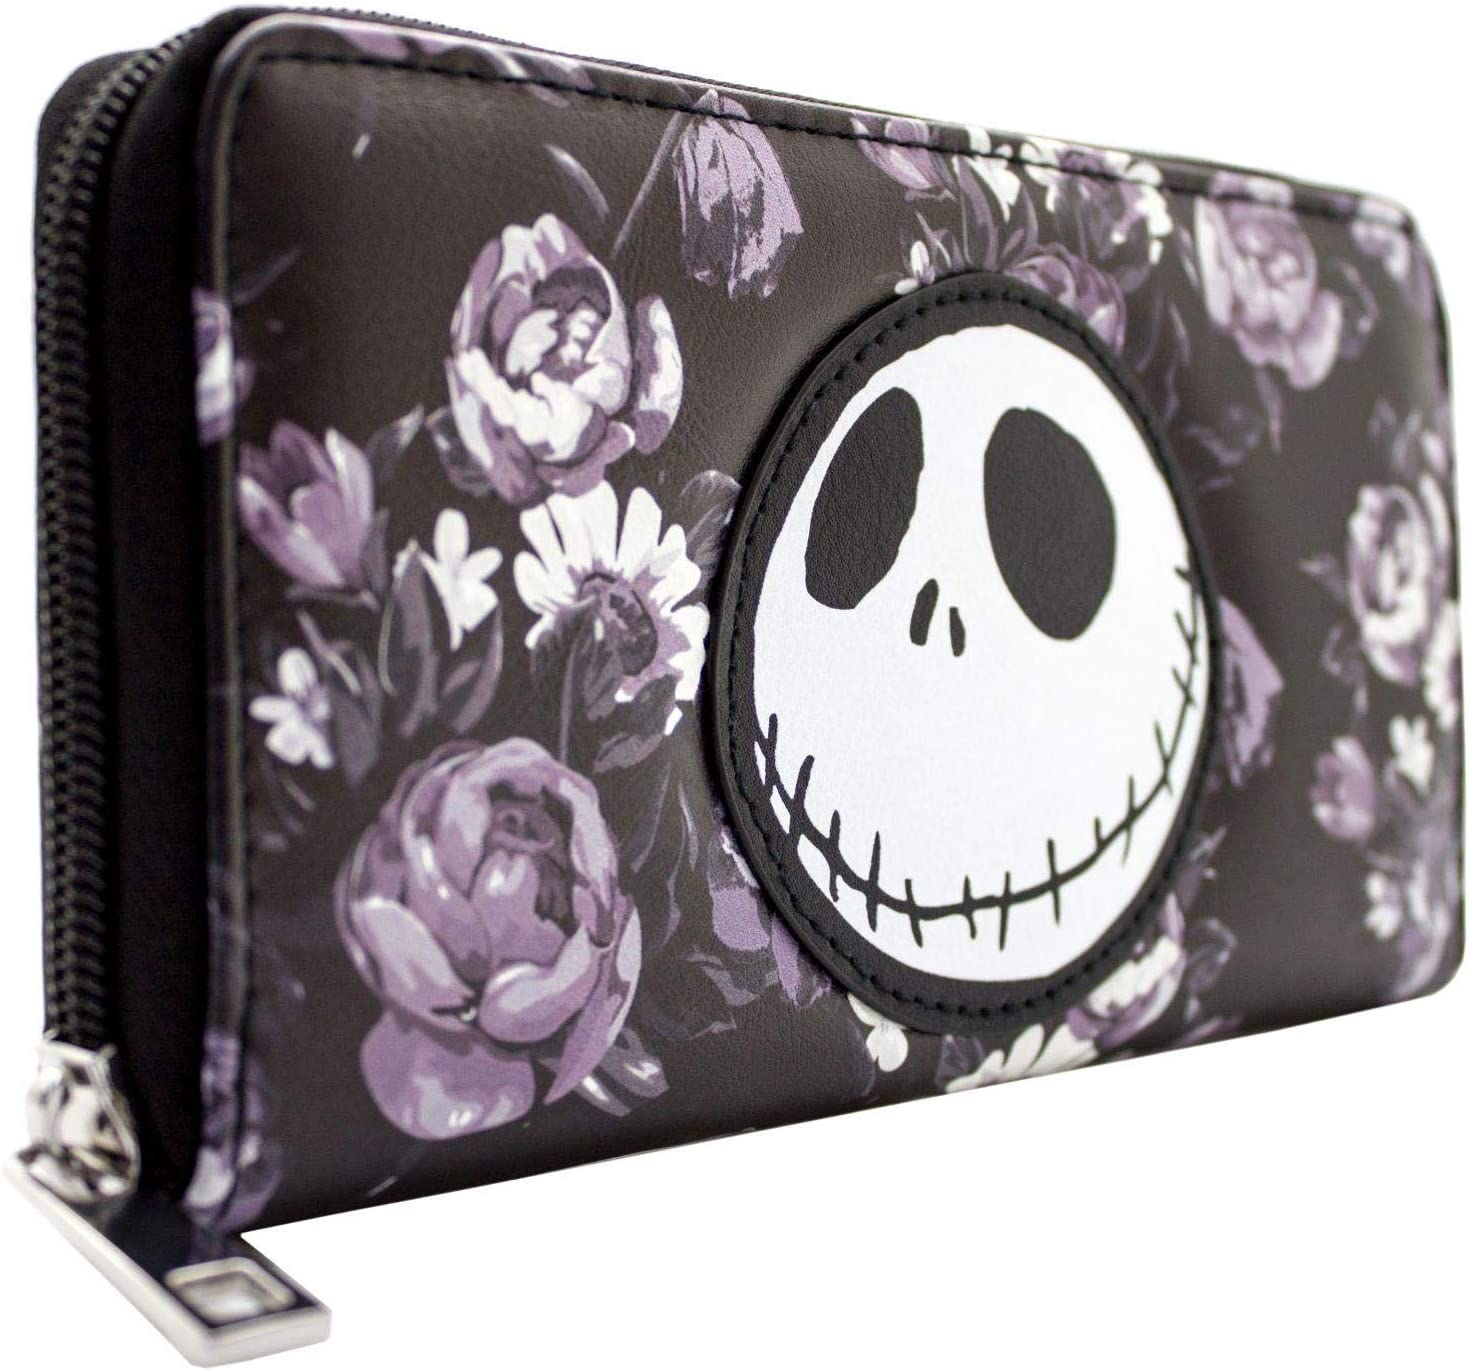 NEW OFFICIAL NIGHTMARE BEFORE CHRISTMAS JACK /& SALLY COIN /& CARD CLUTCH PURSE